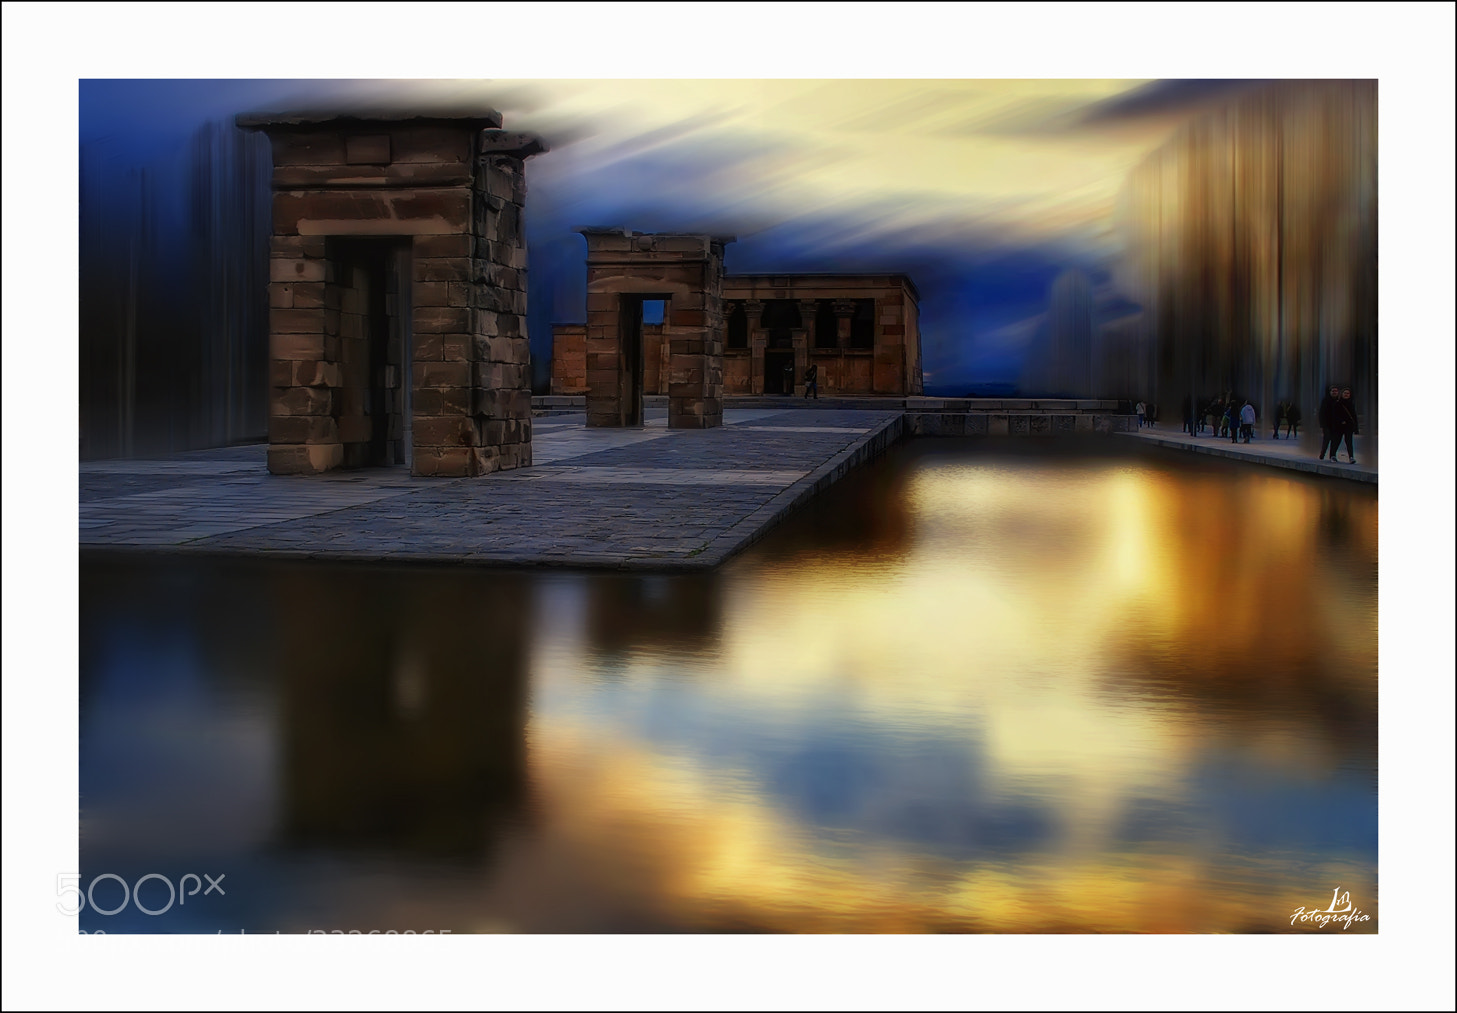 Photograph Dreaming in the Temple of Debod by Manuel Lancha on 500px